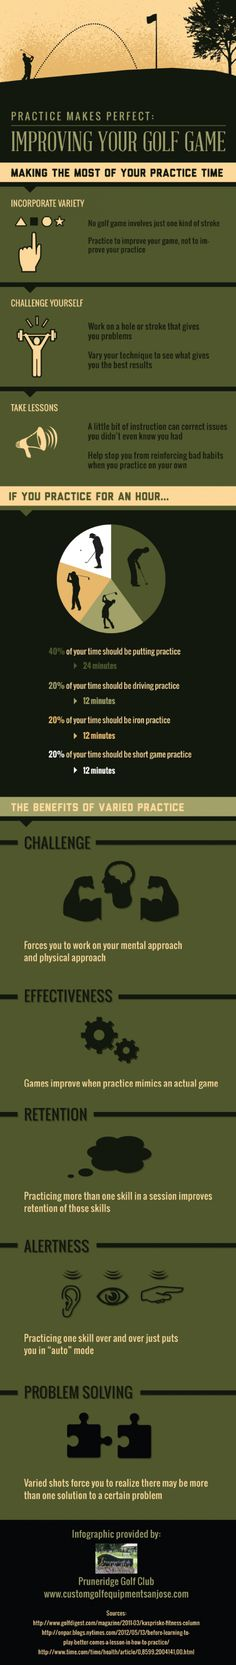 Practice Makes Perfect: Improving Your Golf Game // Pipeline Marketing